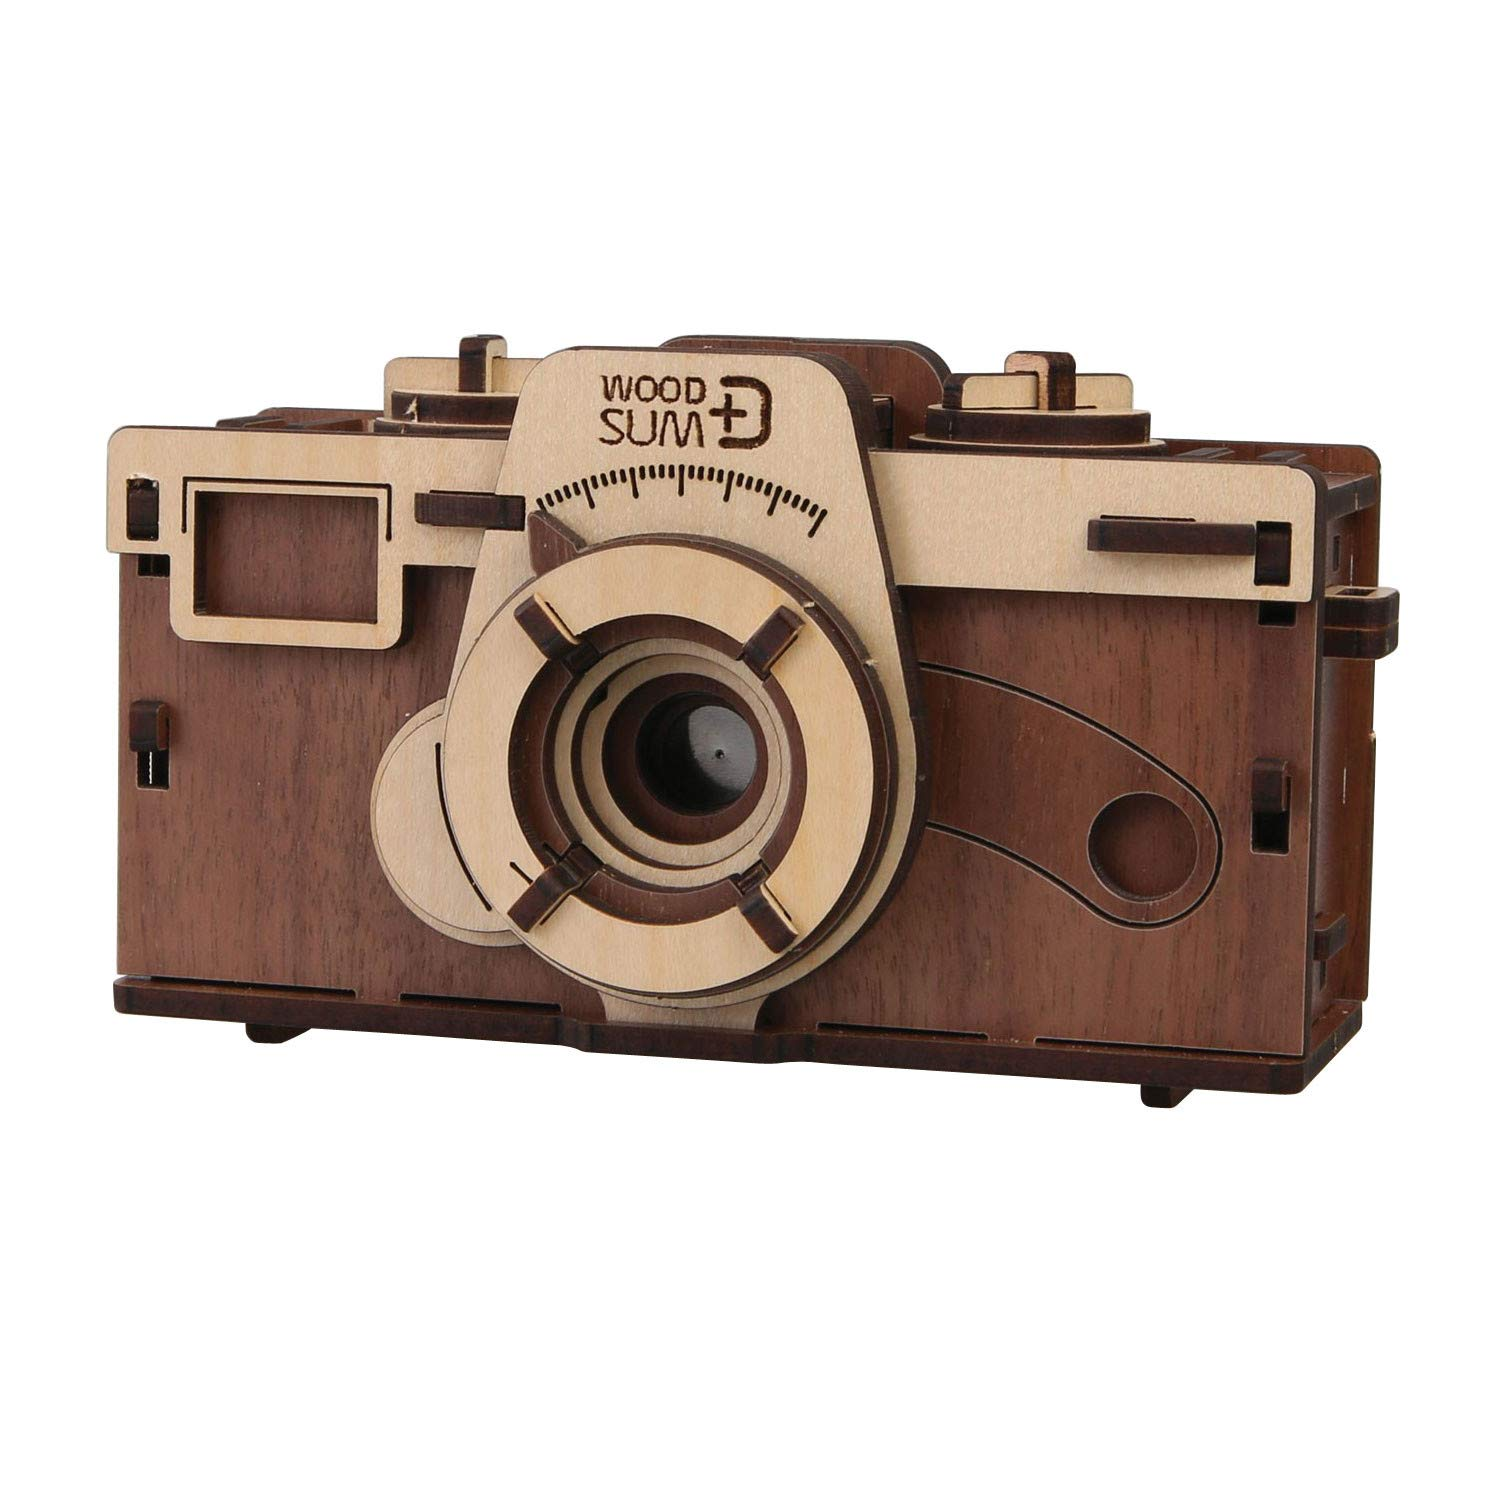 WHAT ON EARTH DIY Working Wood Pinhole Camera - Uses 35mm Film - 6'' x 2.5'' x 3.25'' by WHAT ON EARTH